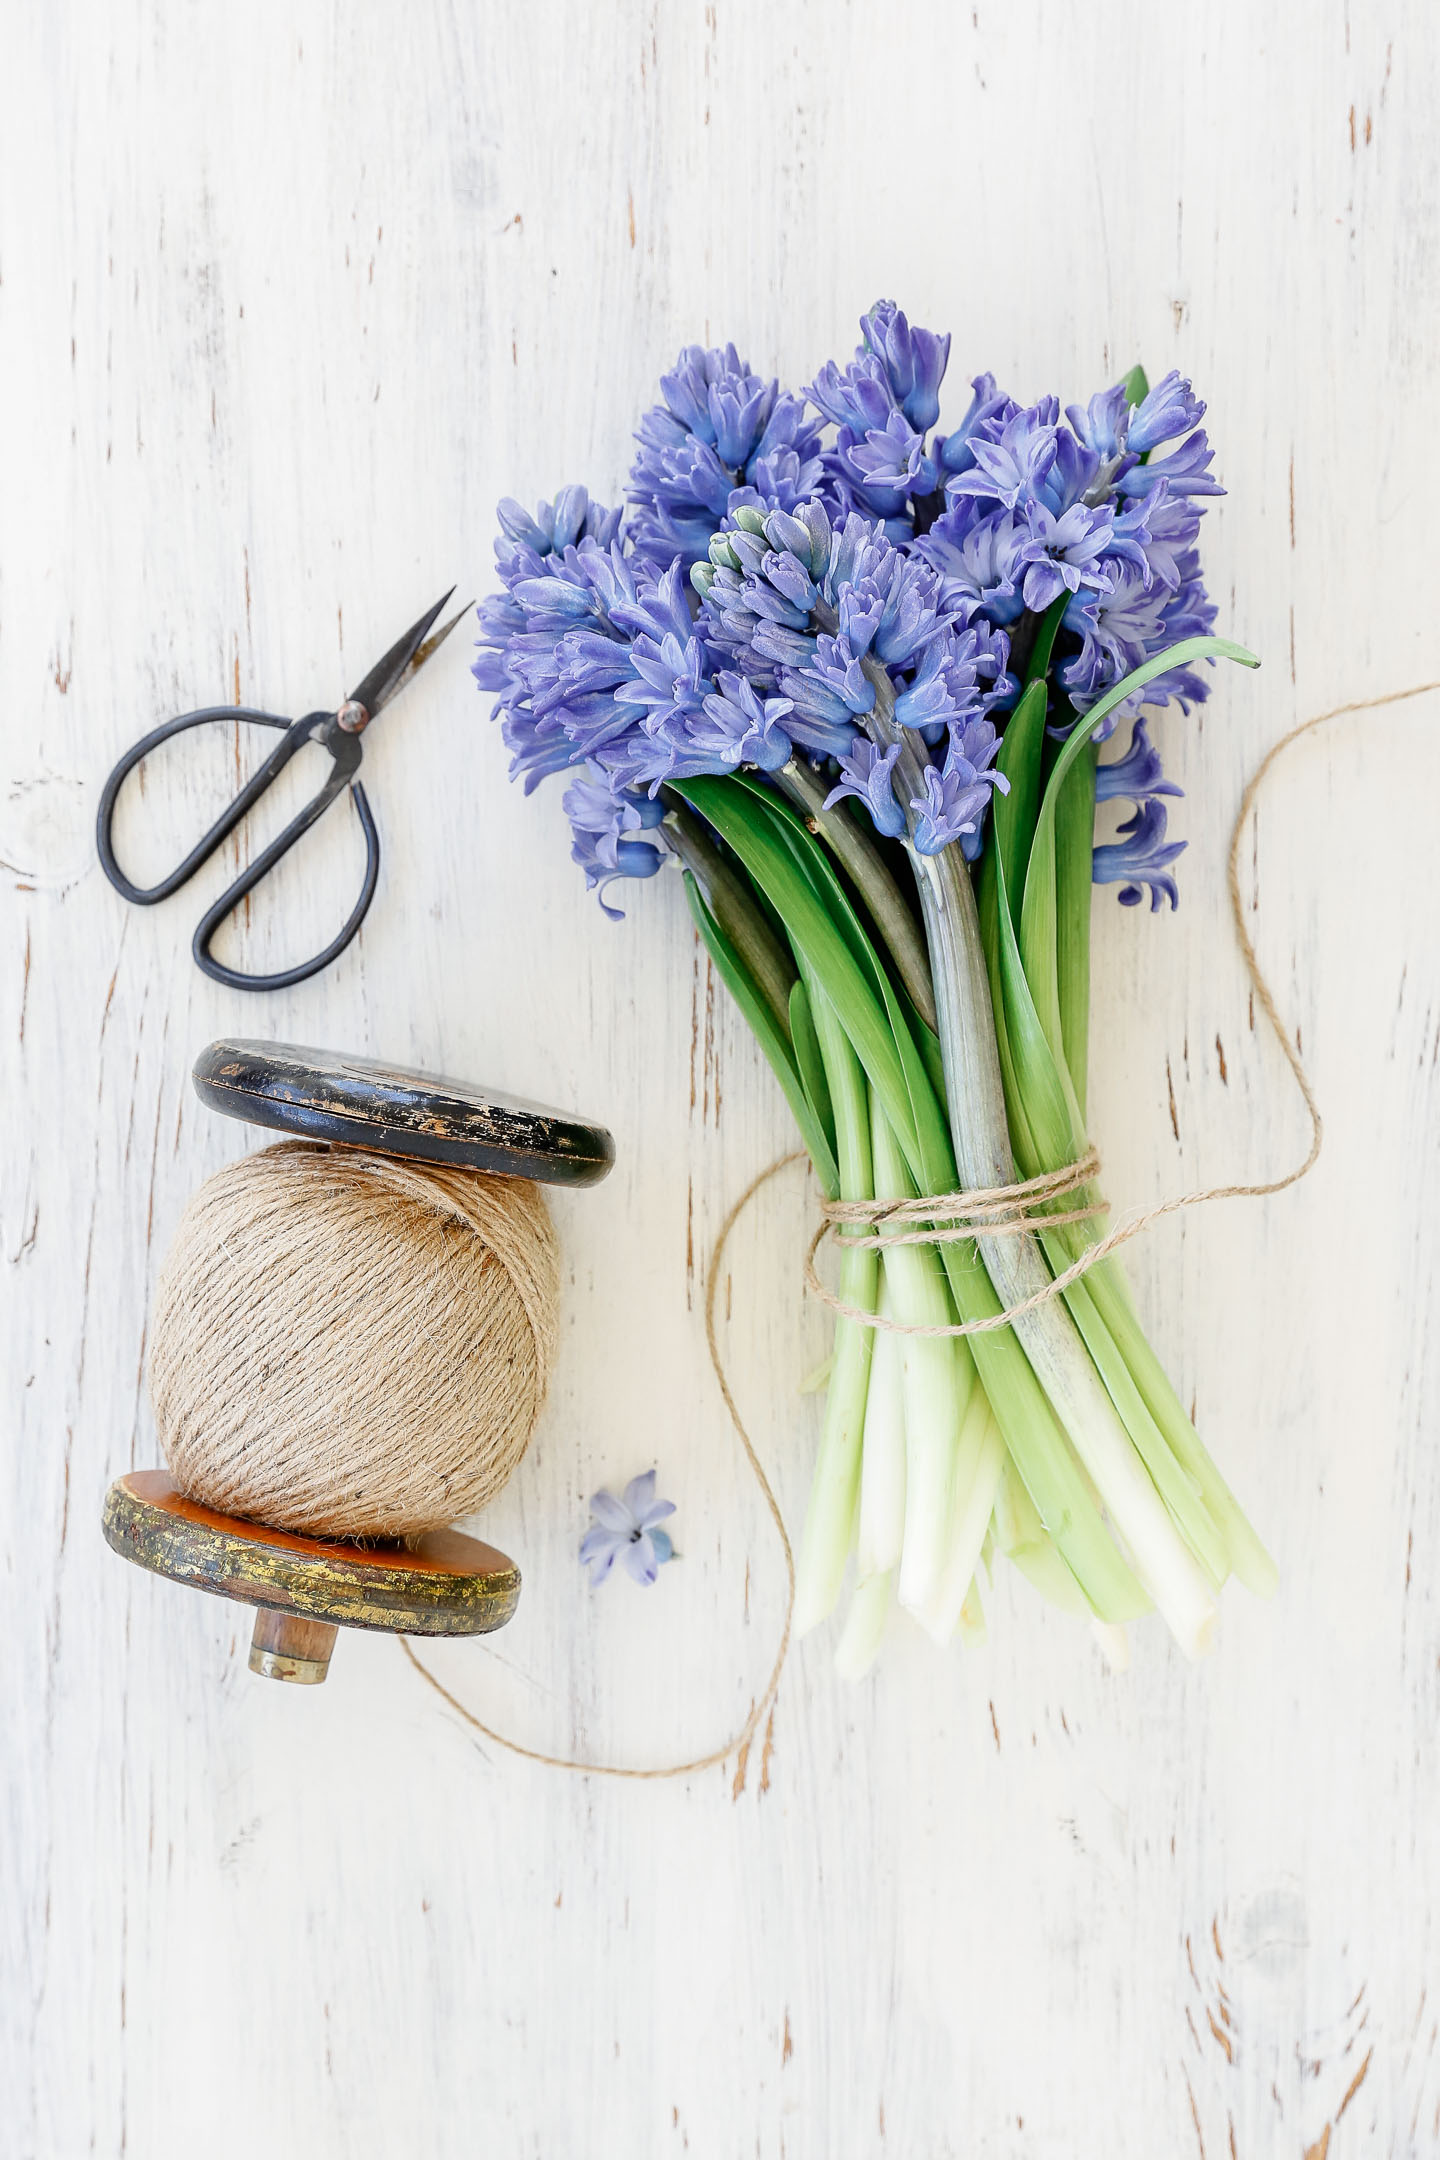 Purple hyacinth tied with twine on a white table